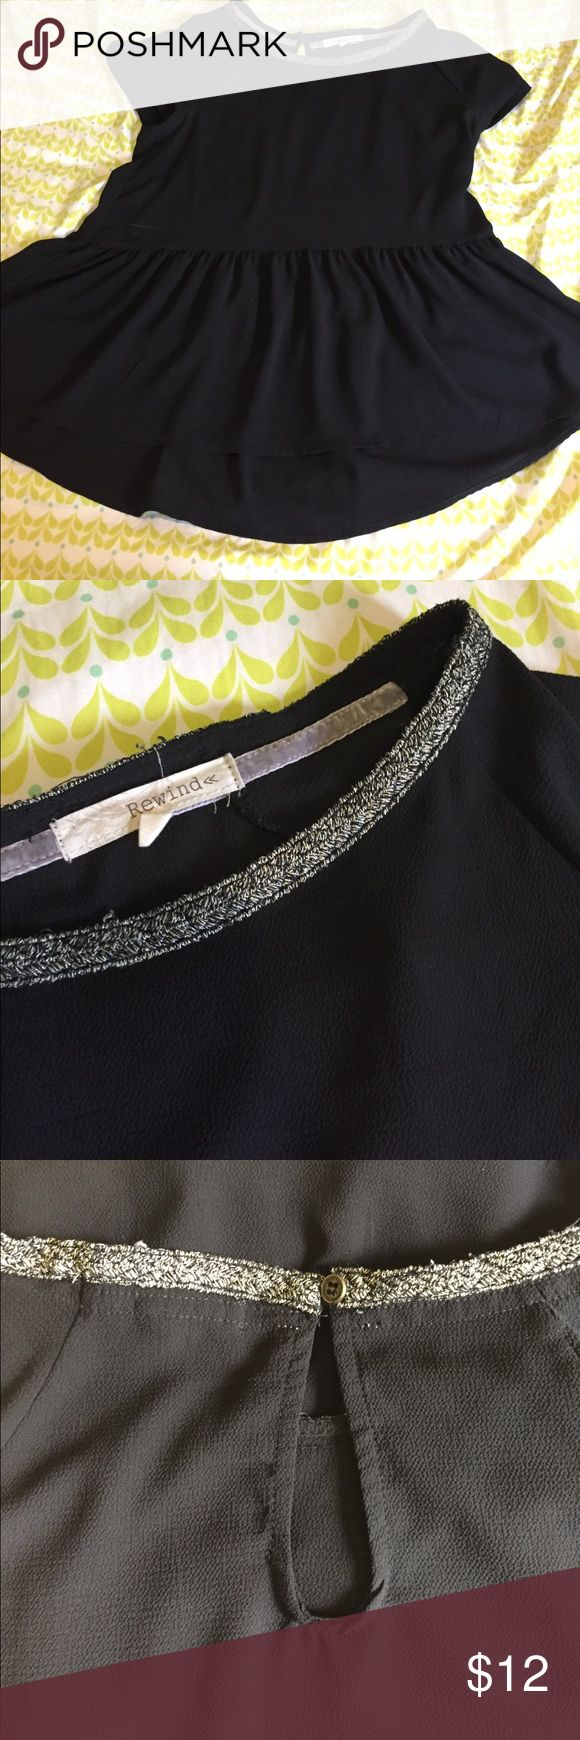 Black flowy peplum Black sheer peplum top. The neckline has a really pretty silver design. Worn once. Could be cute with just a bra or bandeau underneath Rewind Tops Blouses